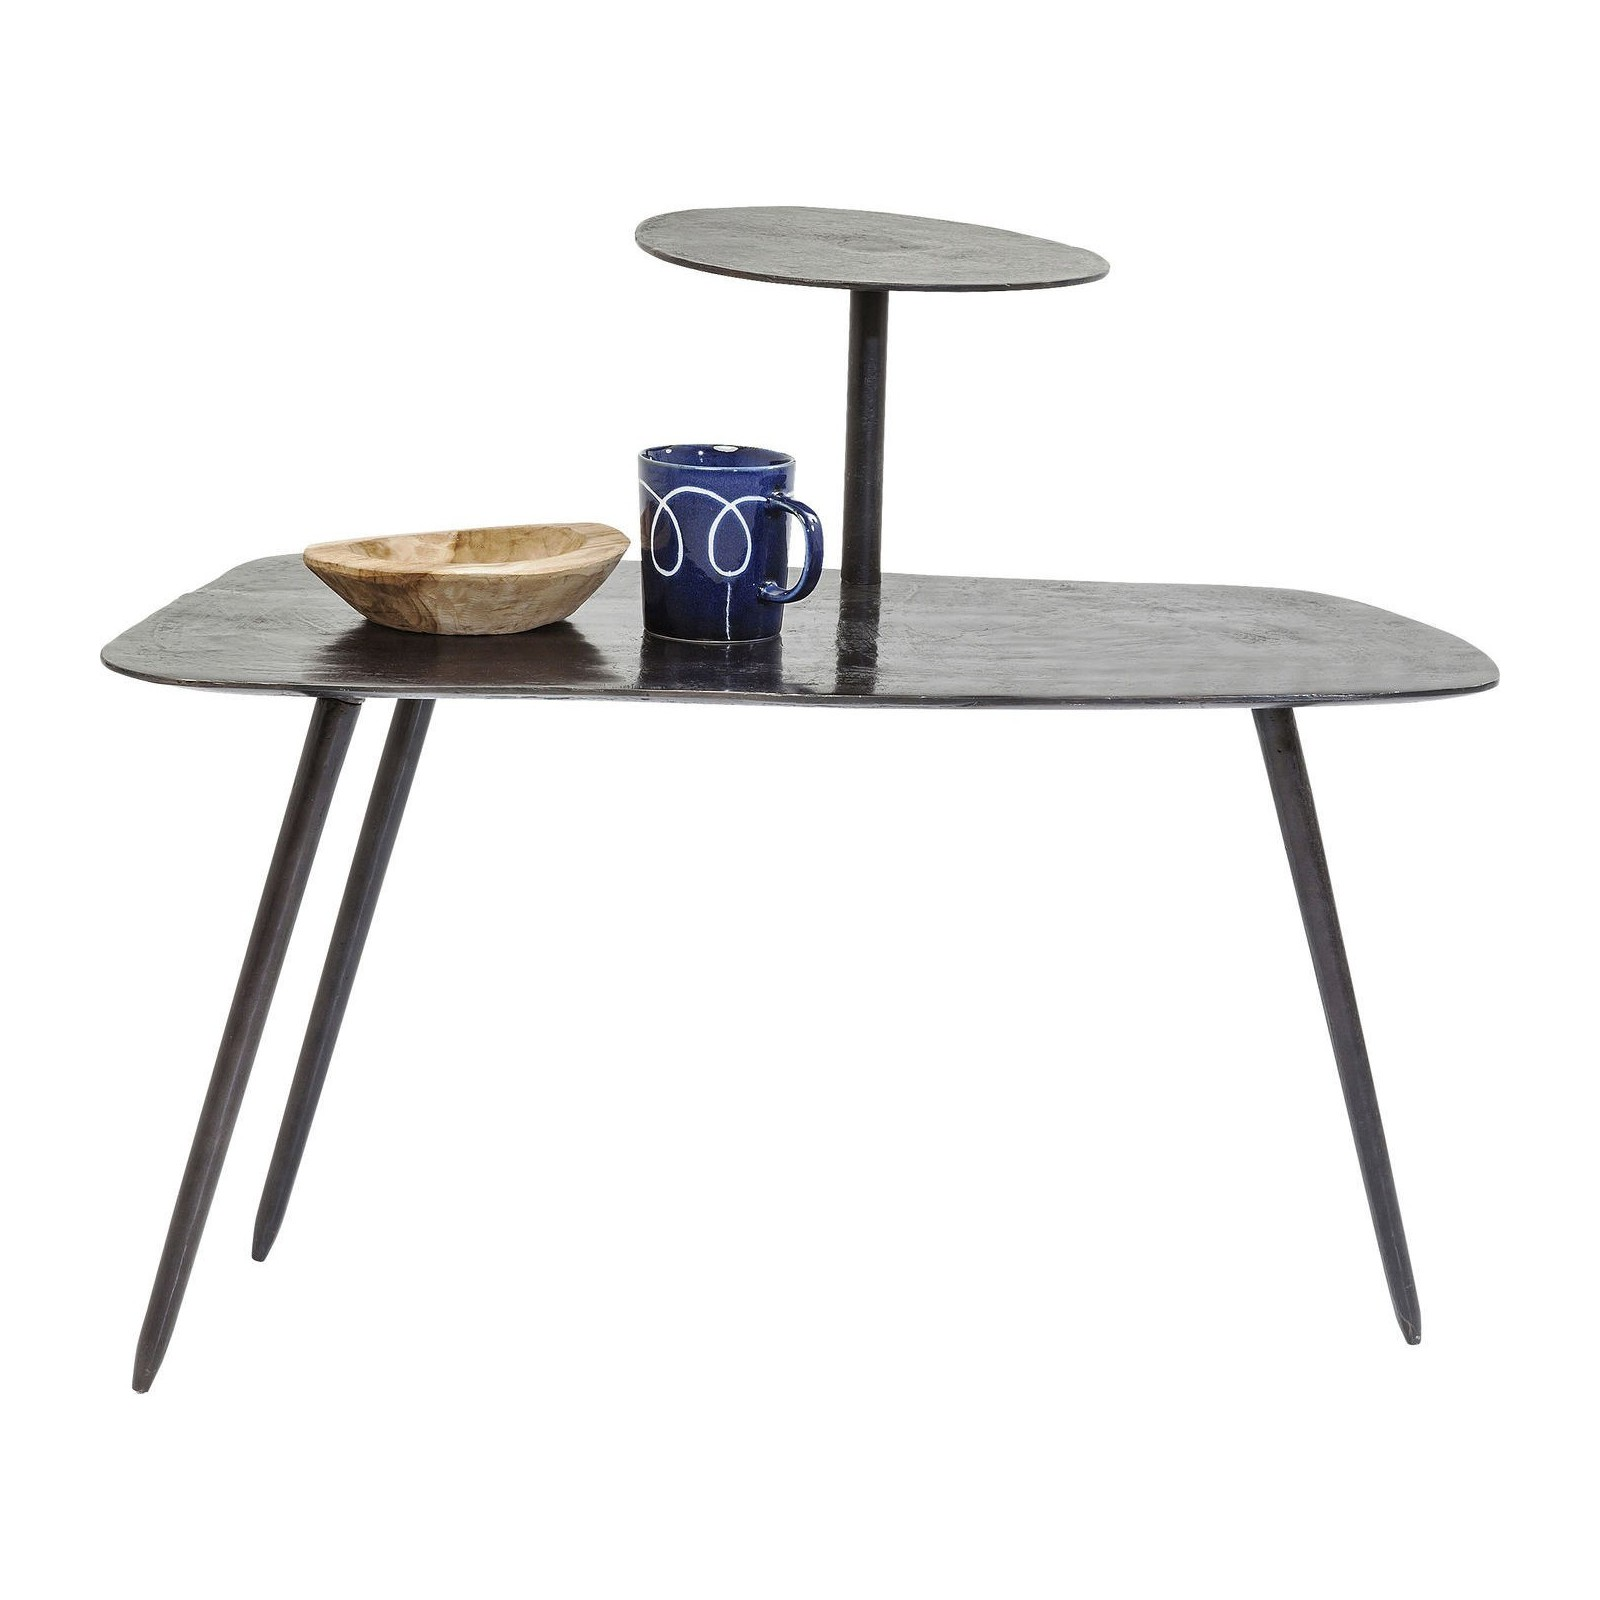 Table basse industrielle noire tower kare design for Table basse noire design